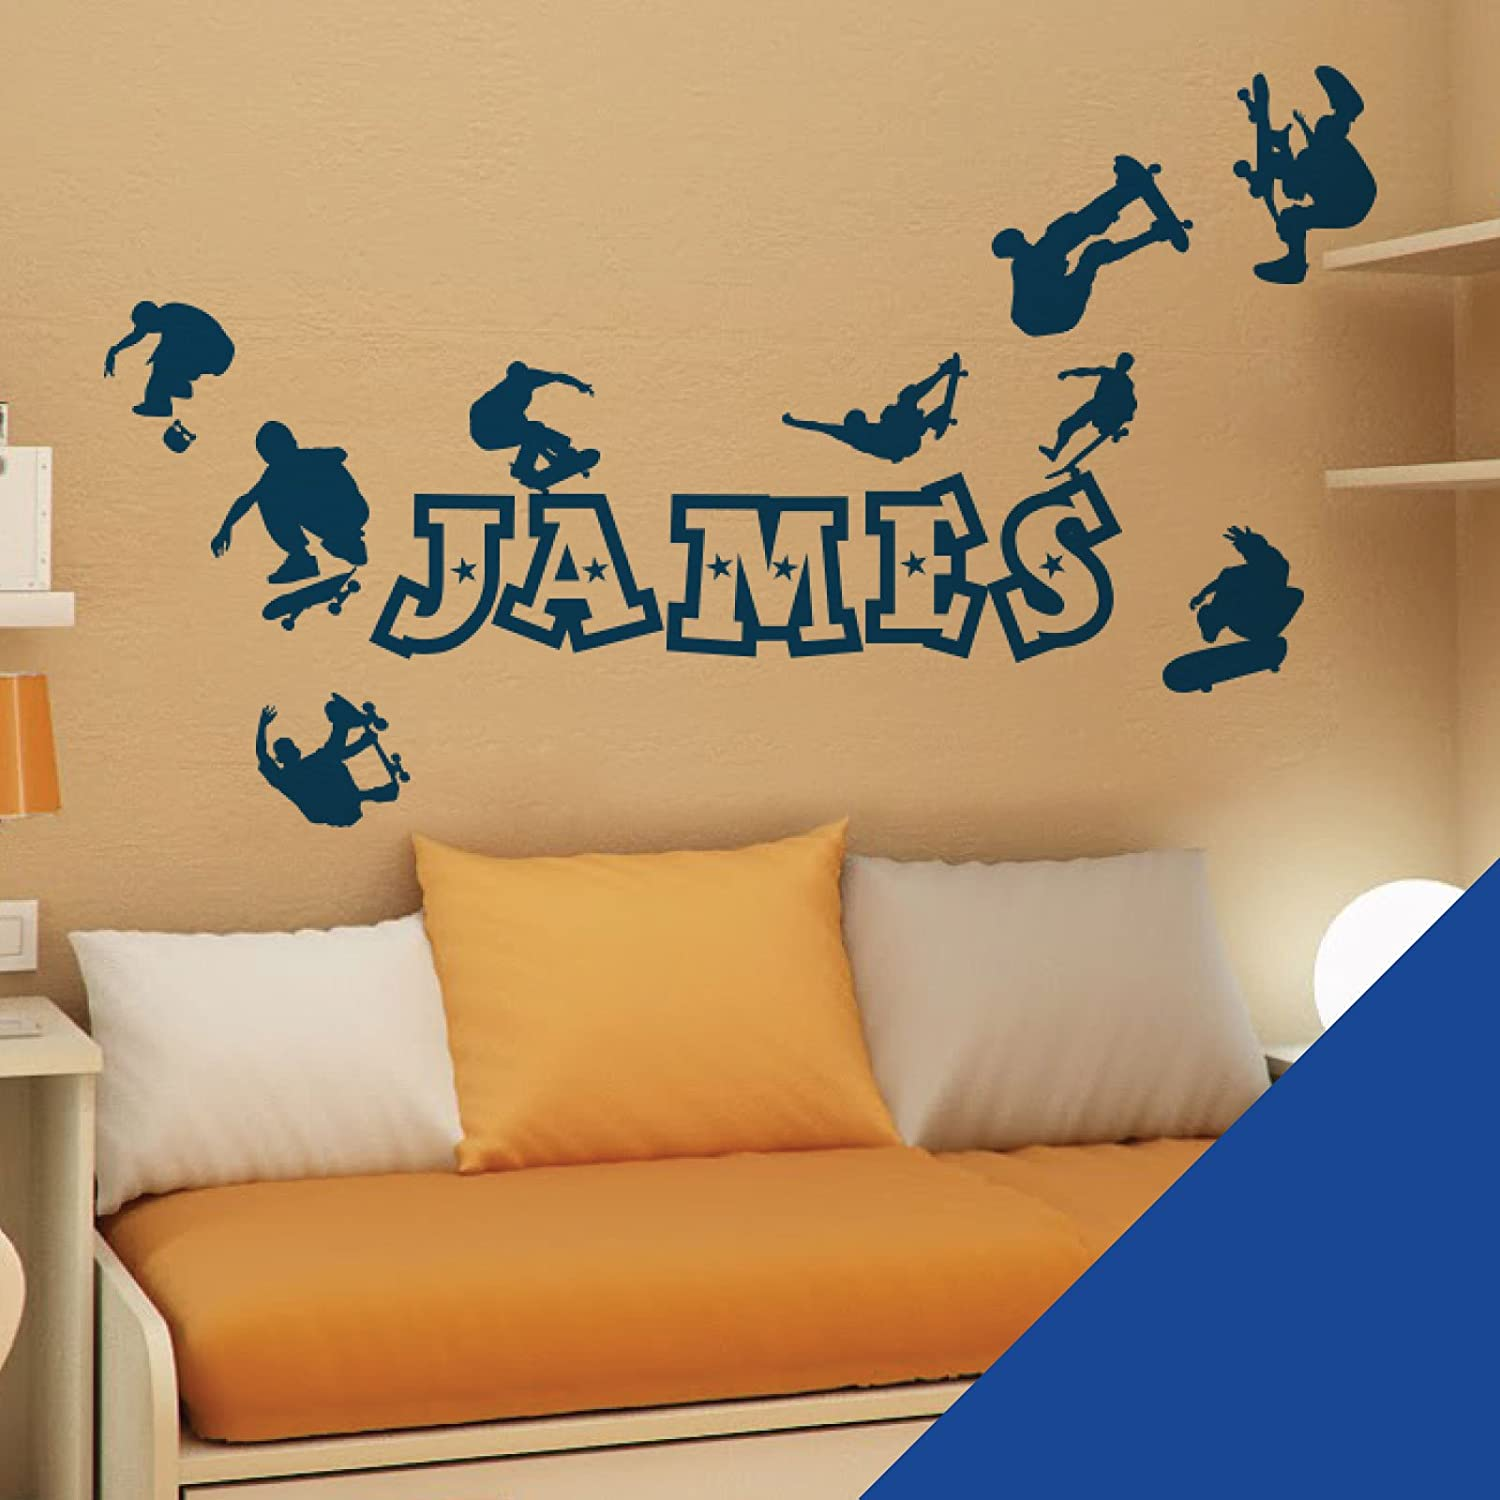 Personalised Name Boys Wall Art Sticker Skaters Skateboard Park Wallpaper 42 Skate Please Message Us With The